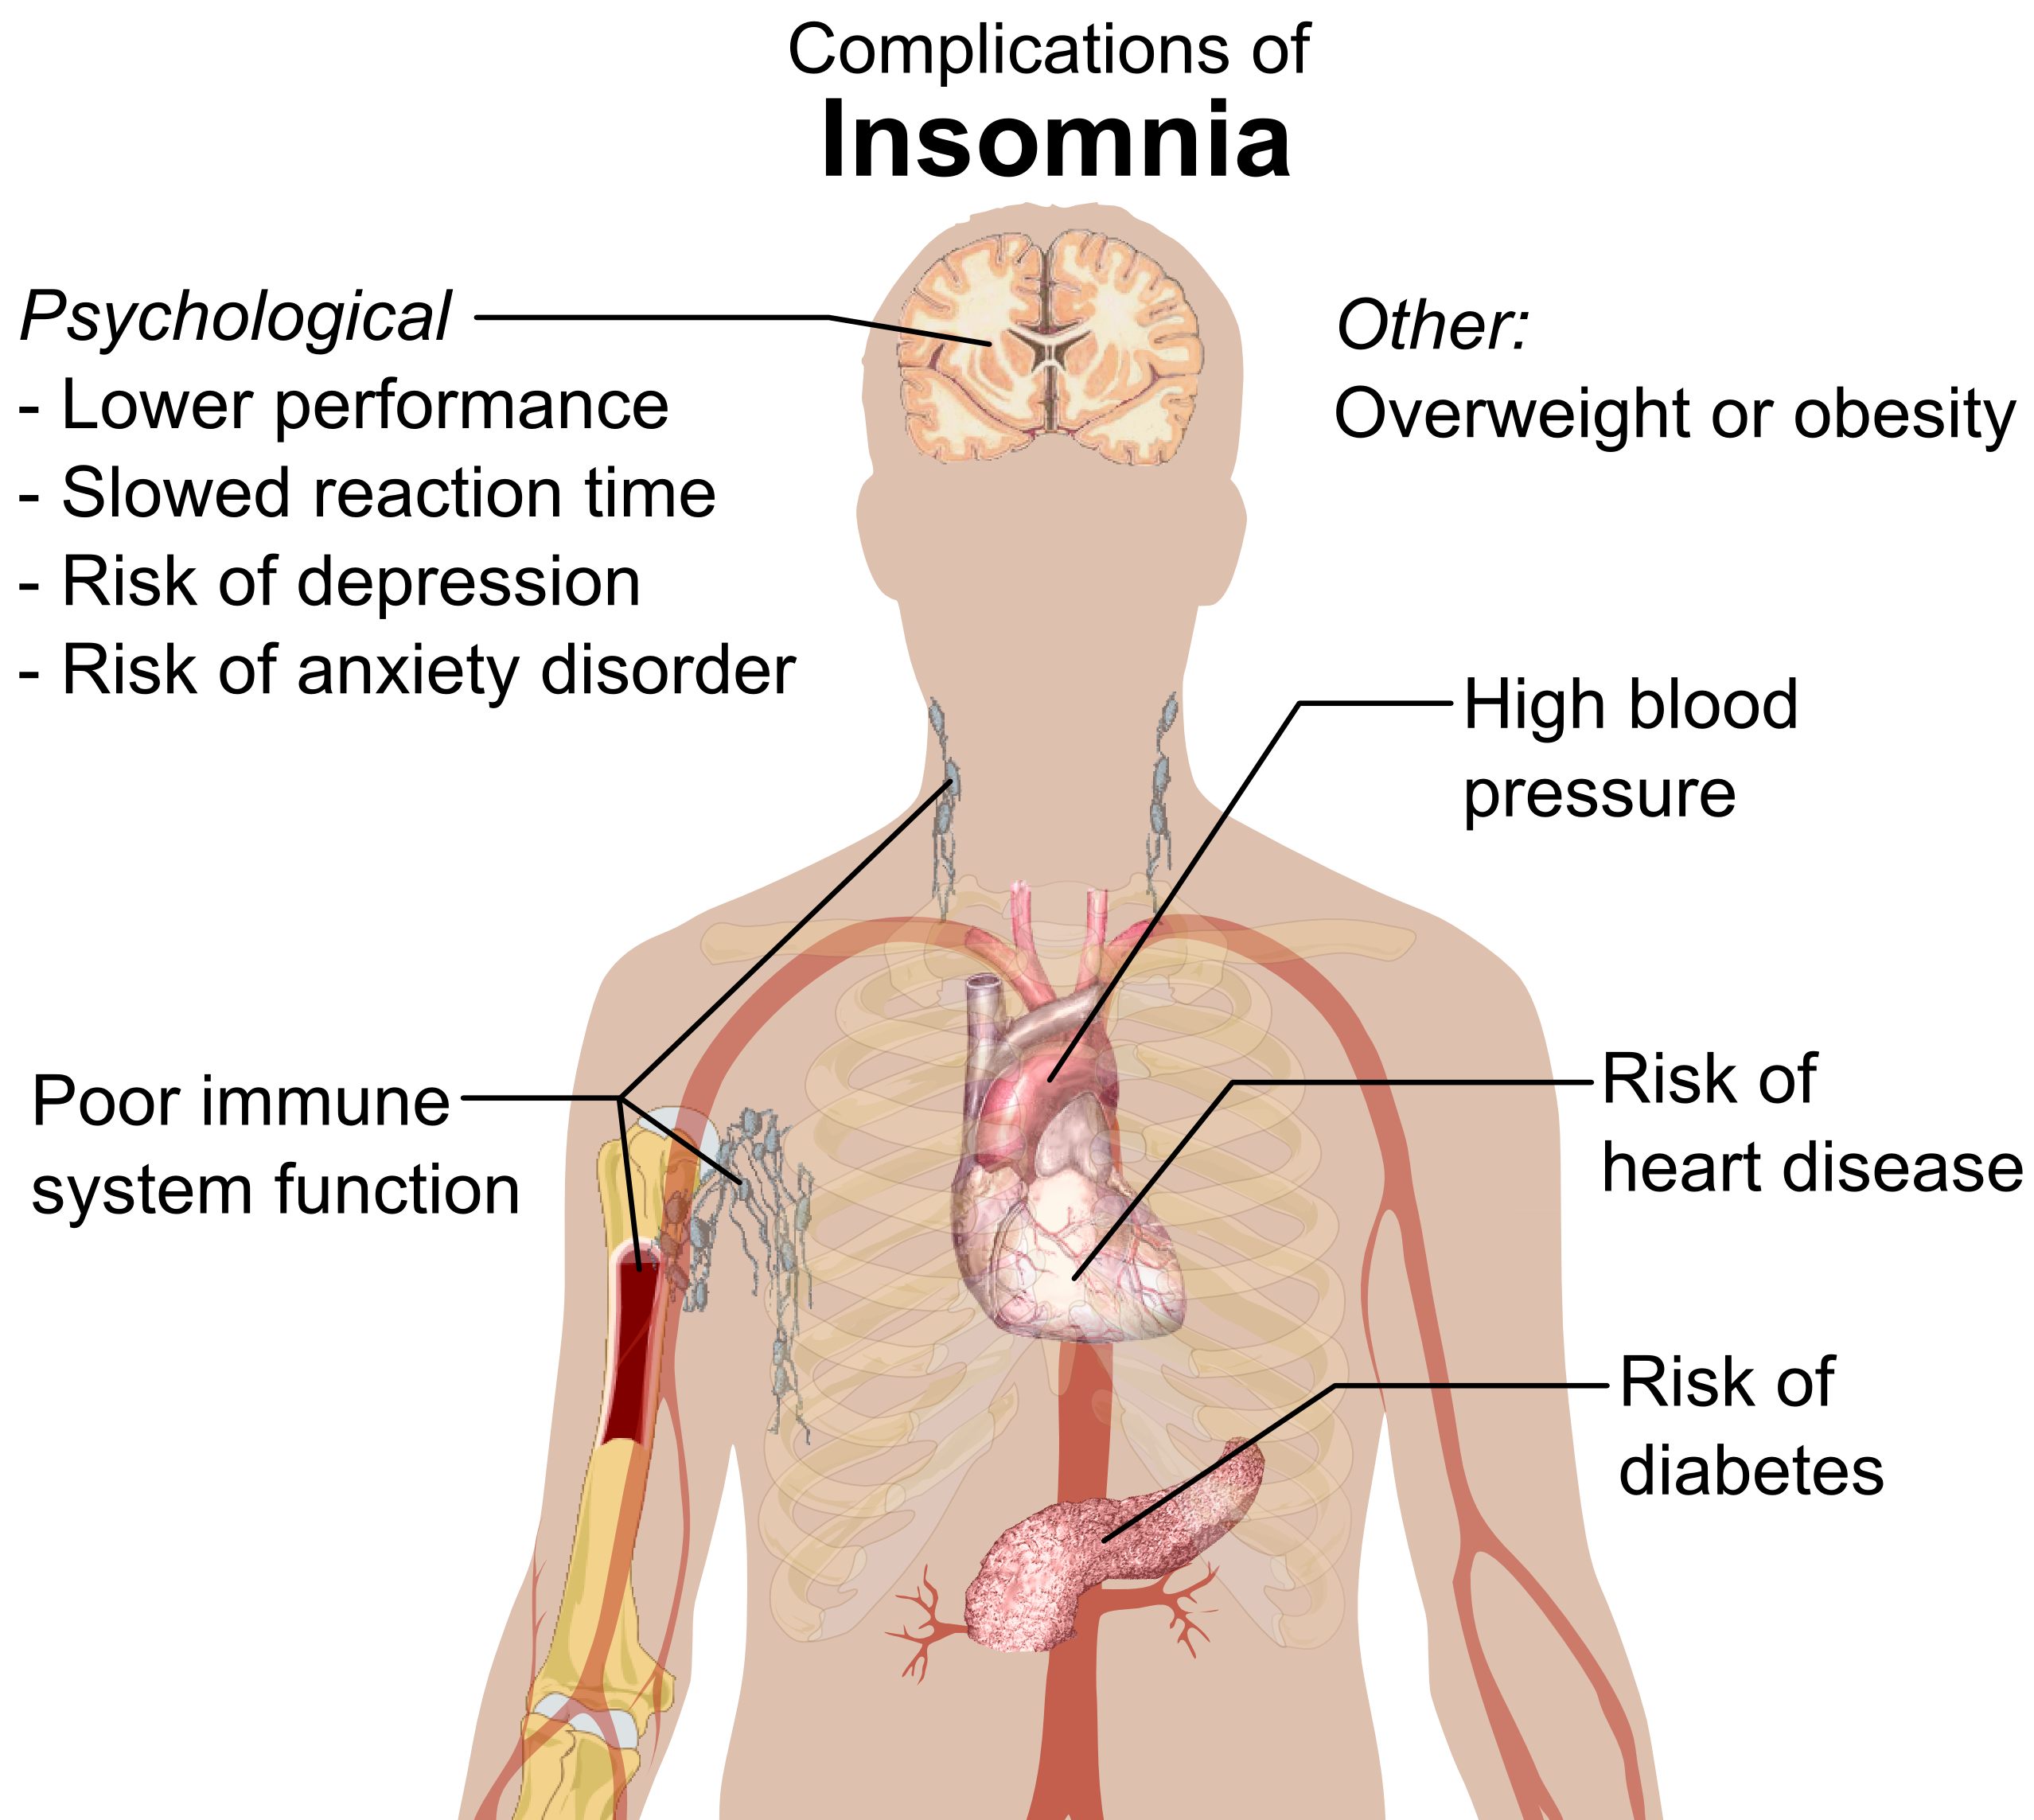 Complications of insomnia Acupuncture Cure for the Insomniac Nation